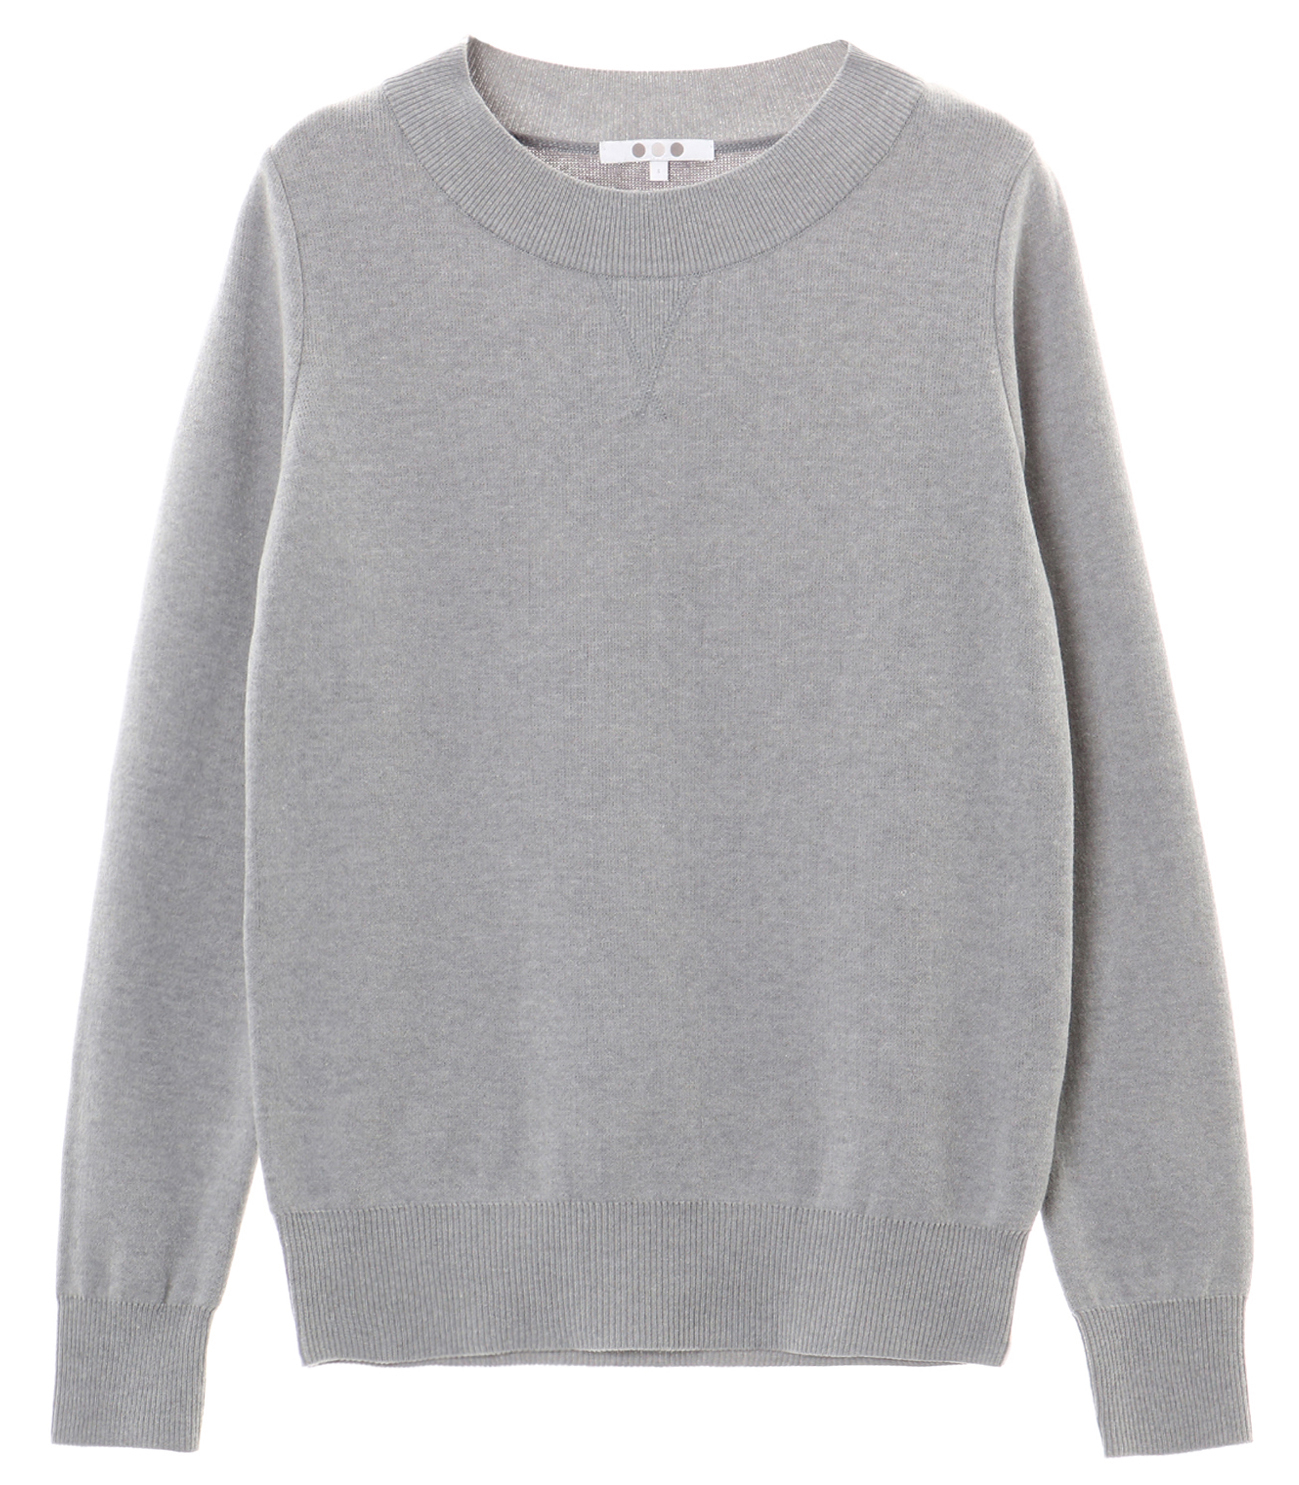 warm cotton l/s crew neck 詳細画像 grey 1